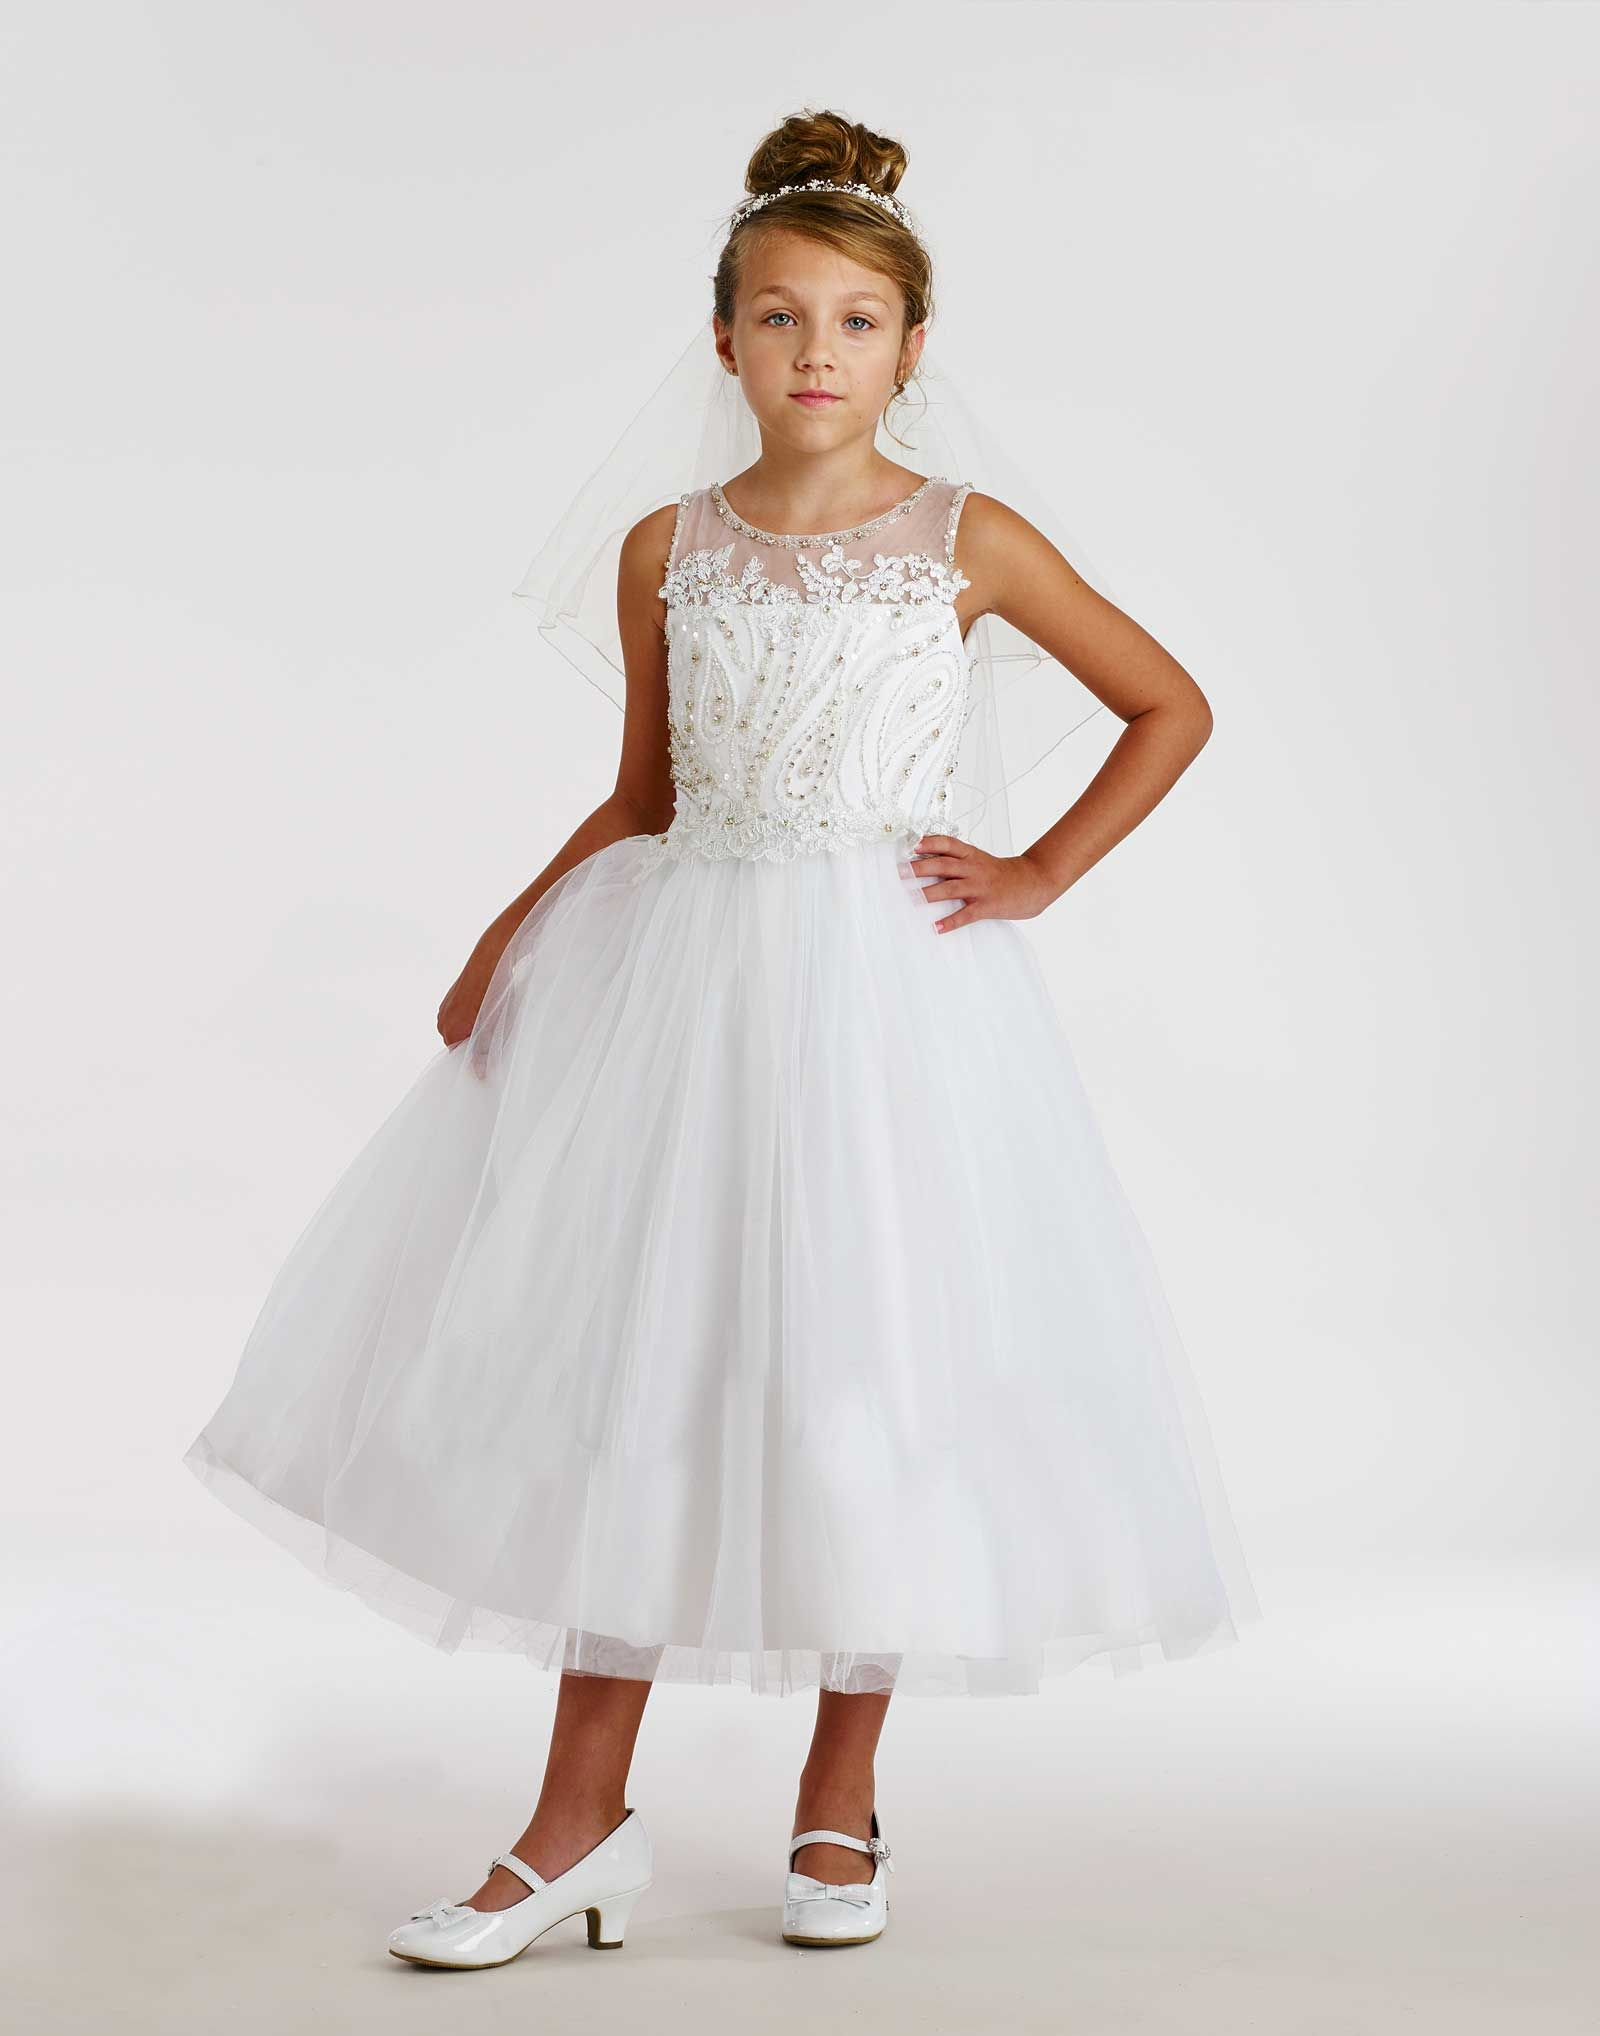 Macis couturedesigner girls dress style t embroidered tulle